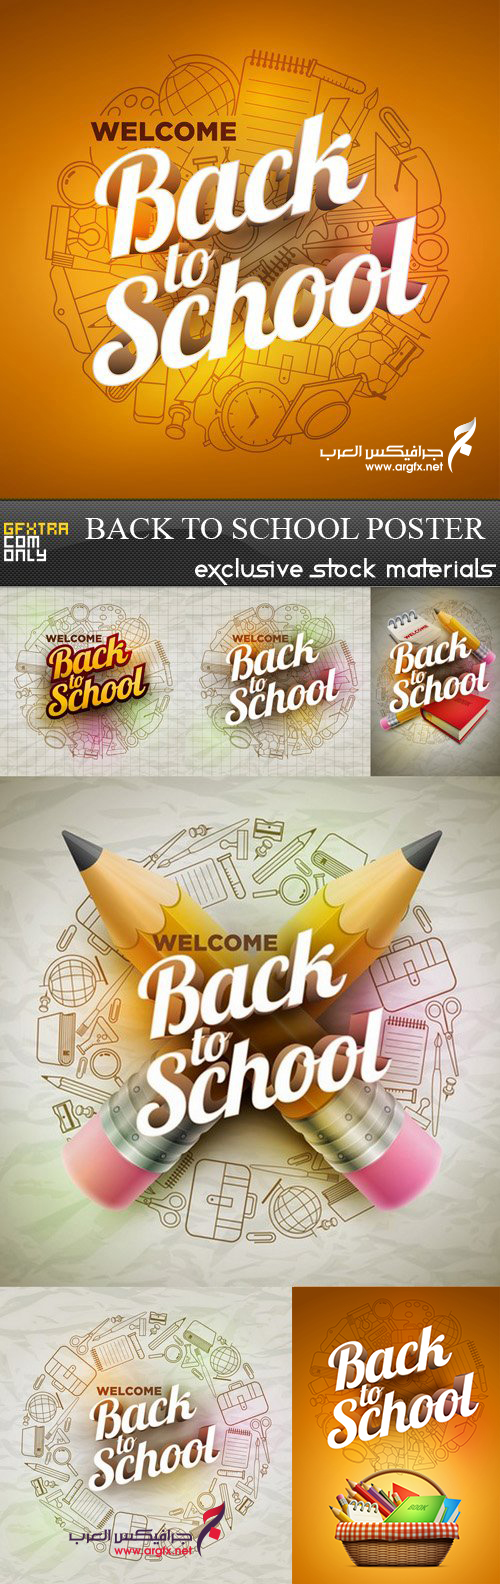 Back to School Poster - 7 EPS